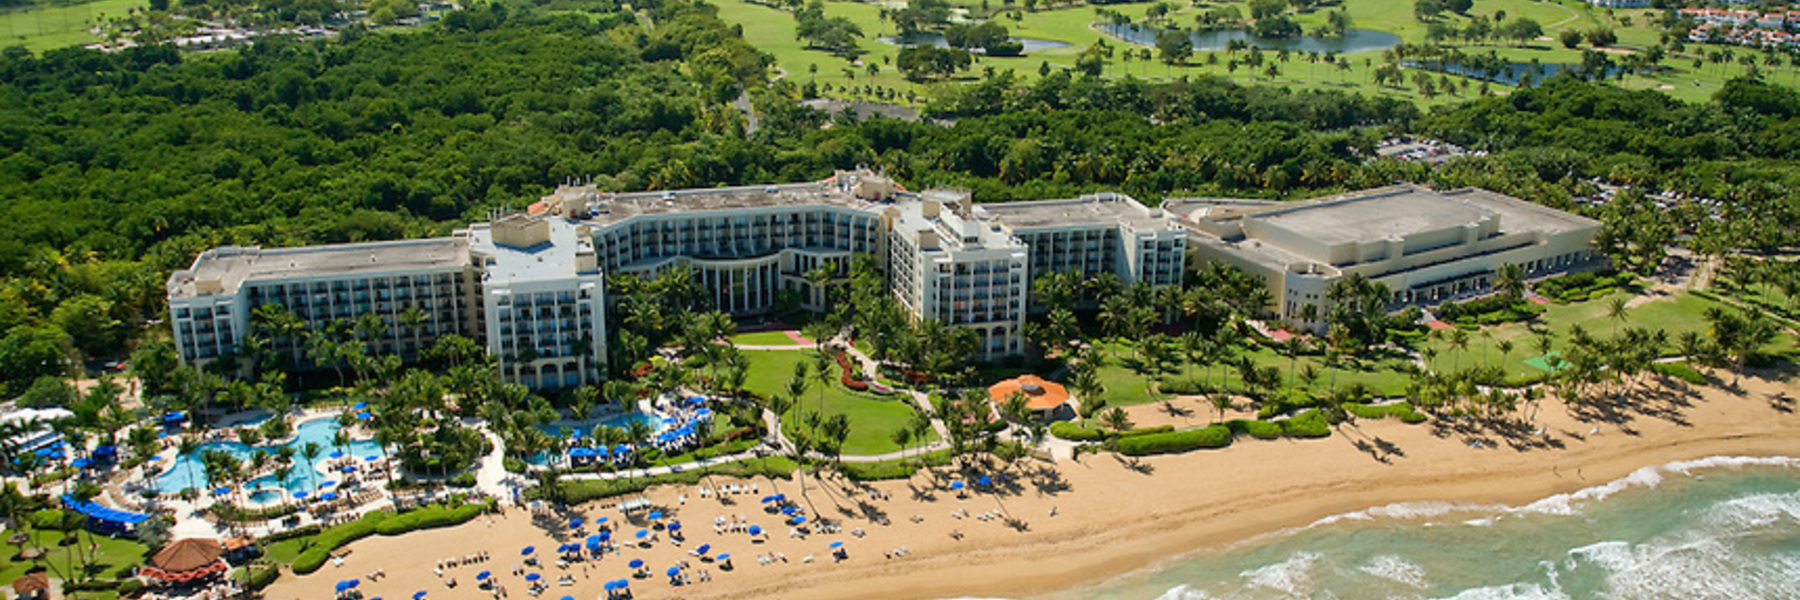 Golf Vacation Package - Wyndham Grand Rio Mar Resort All-Inclusive Stay & Play for $354 per day!